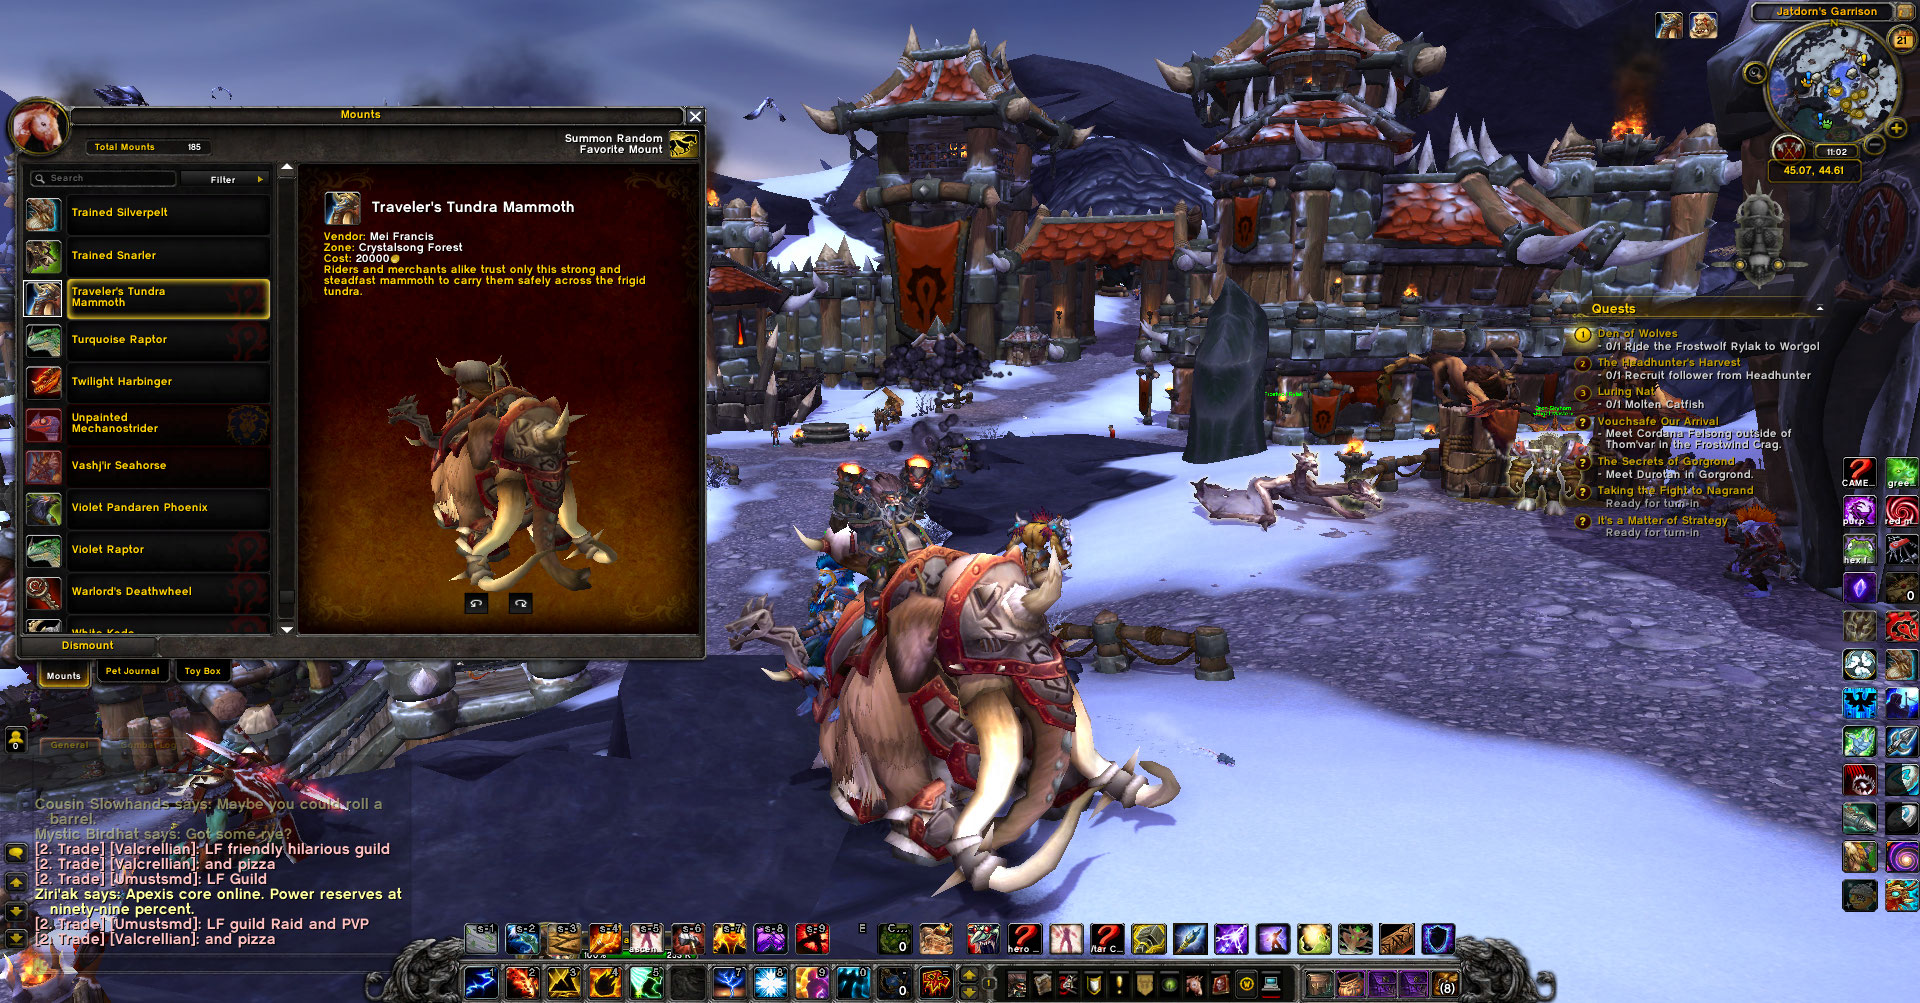 World of warcraft pets for sale - Best cheap smart tv